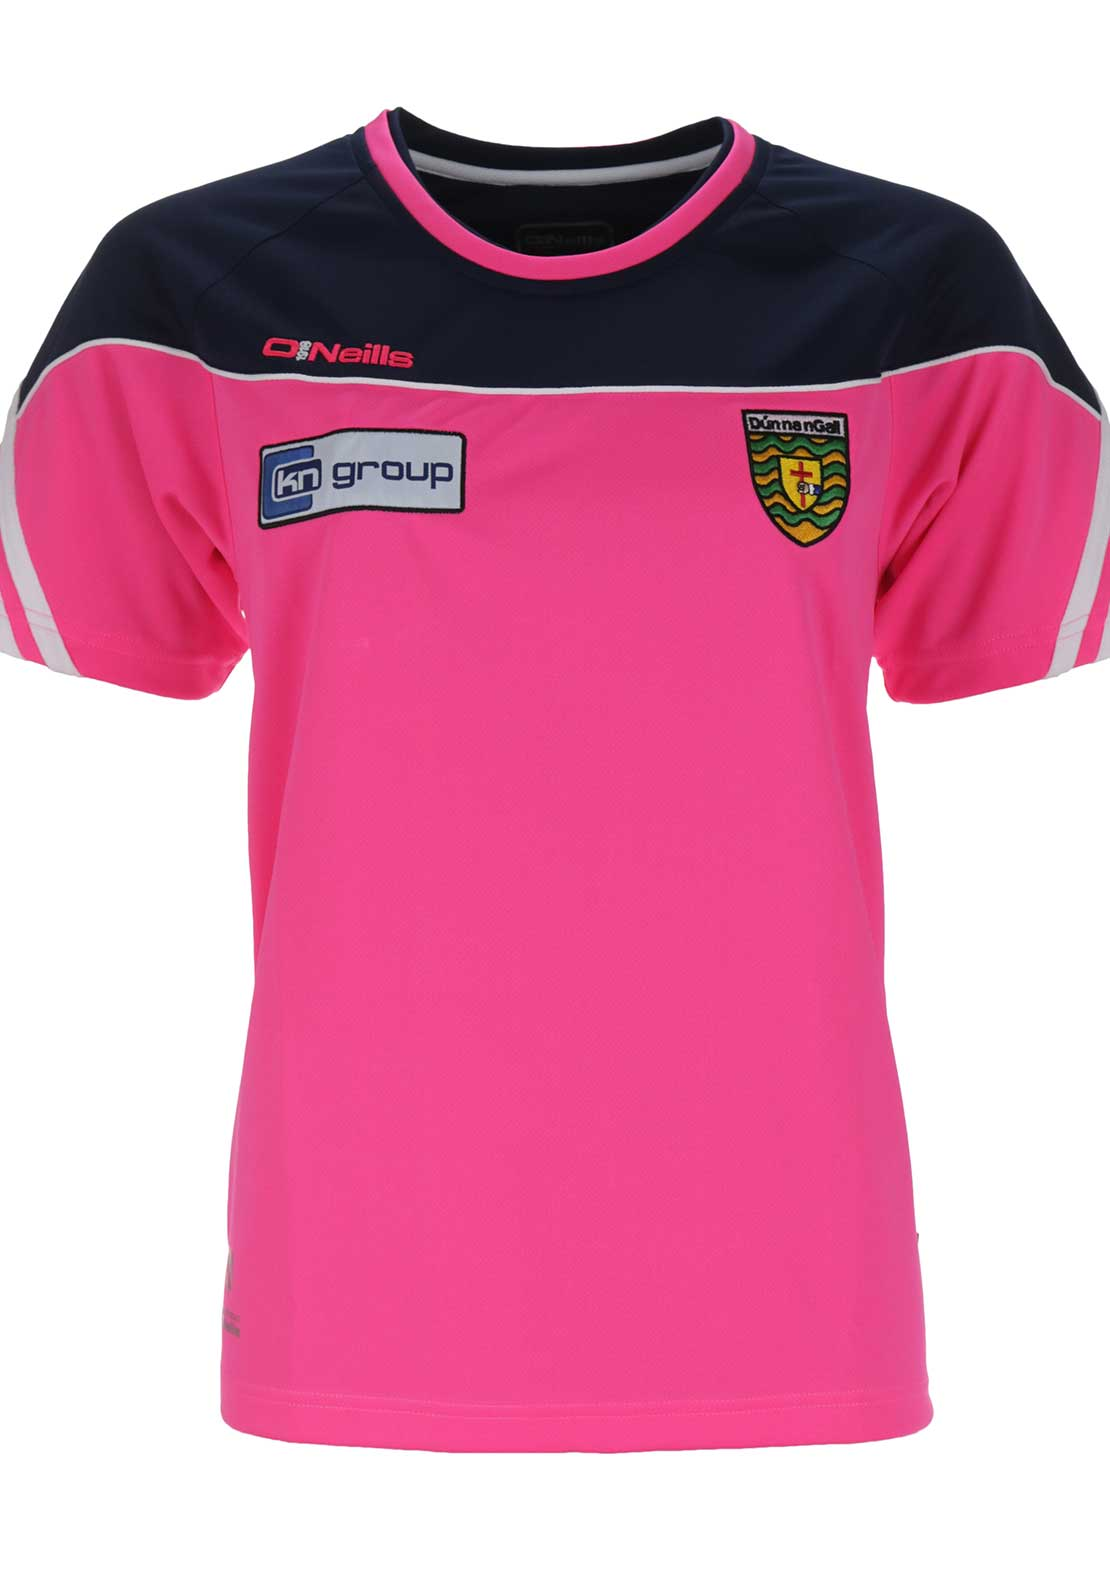 O'Neills Donegal GAA Girls Parnell Training T-Shirt, Pink